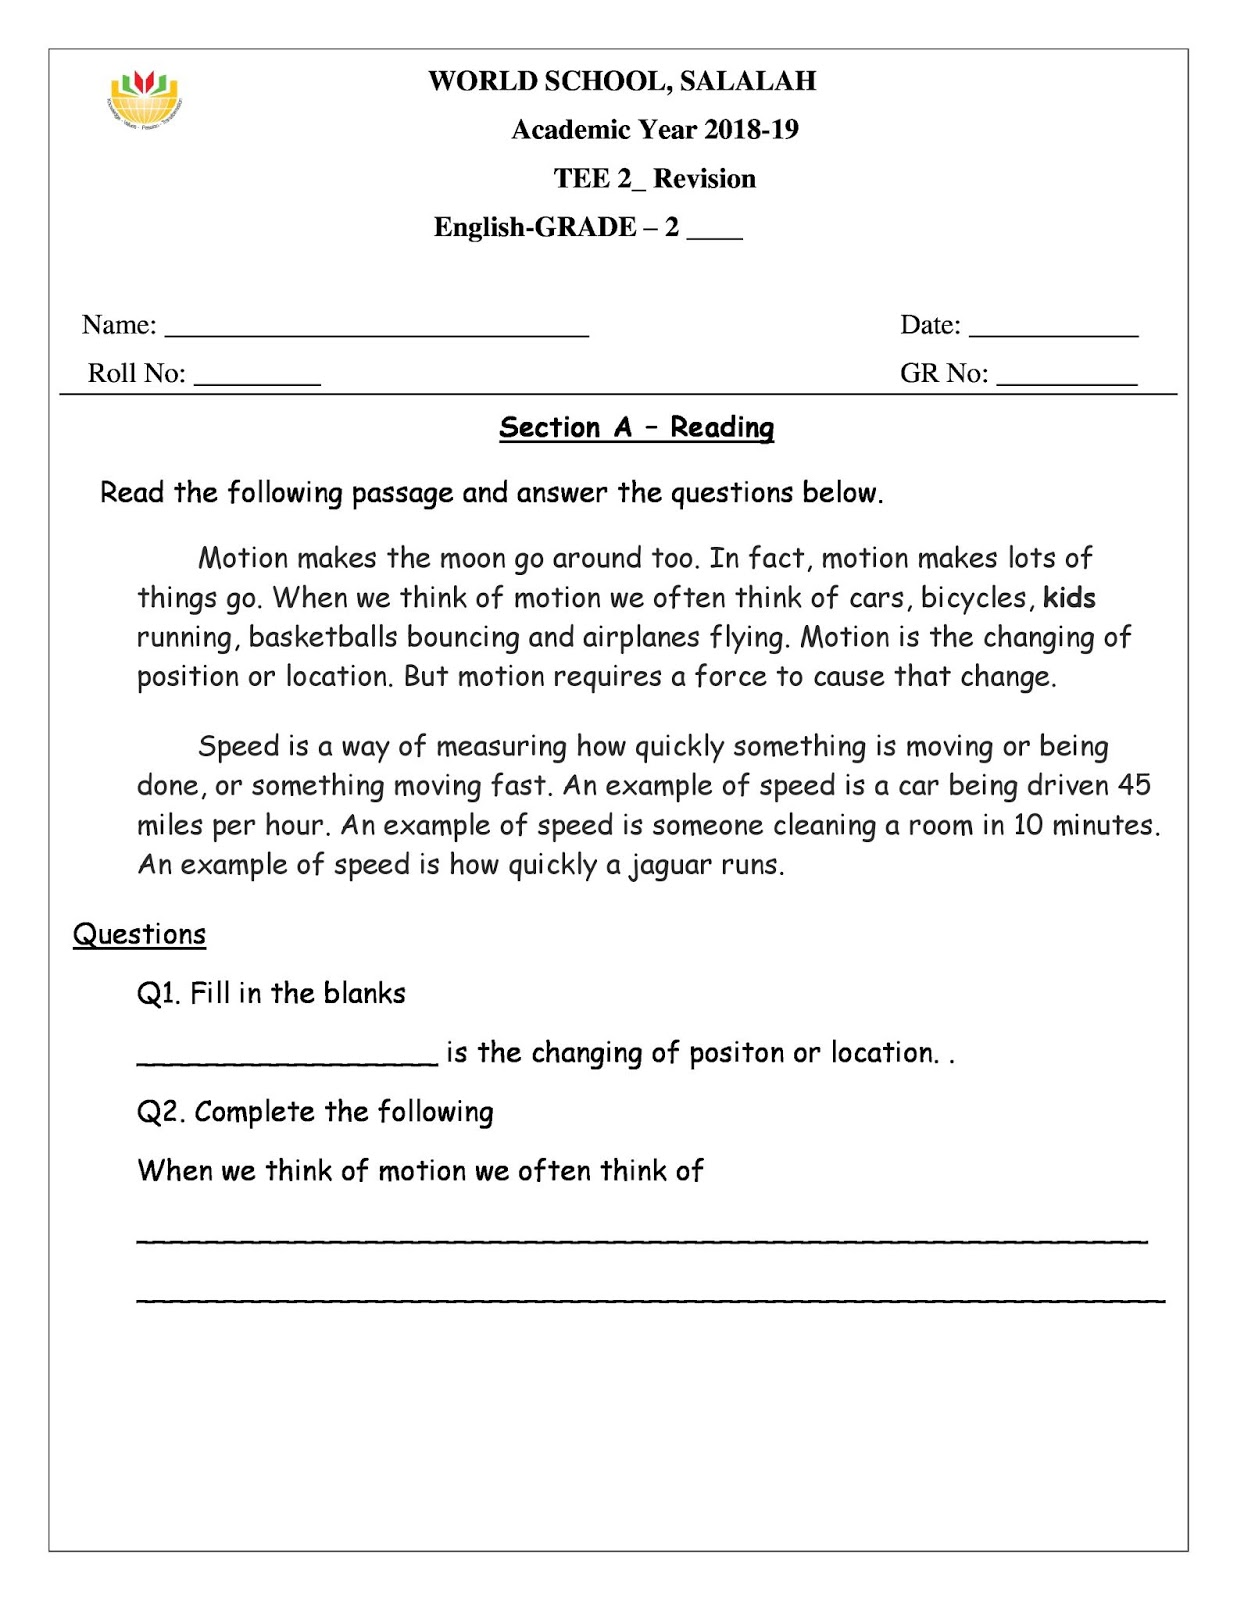 hight resolution of Revision Worksheets for Grade 2 as on 12-05-2019   WORLD SCHOOL OMAN